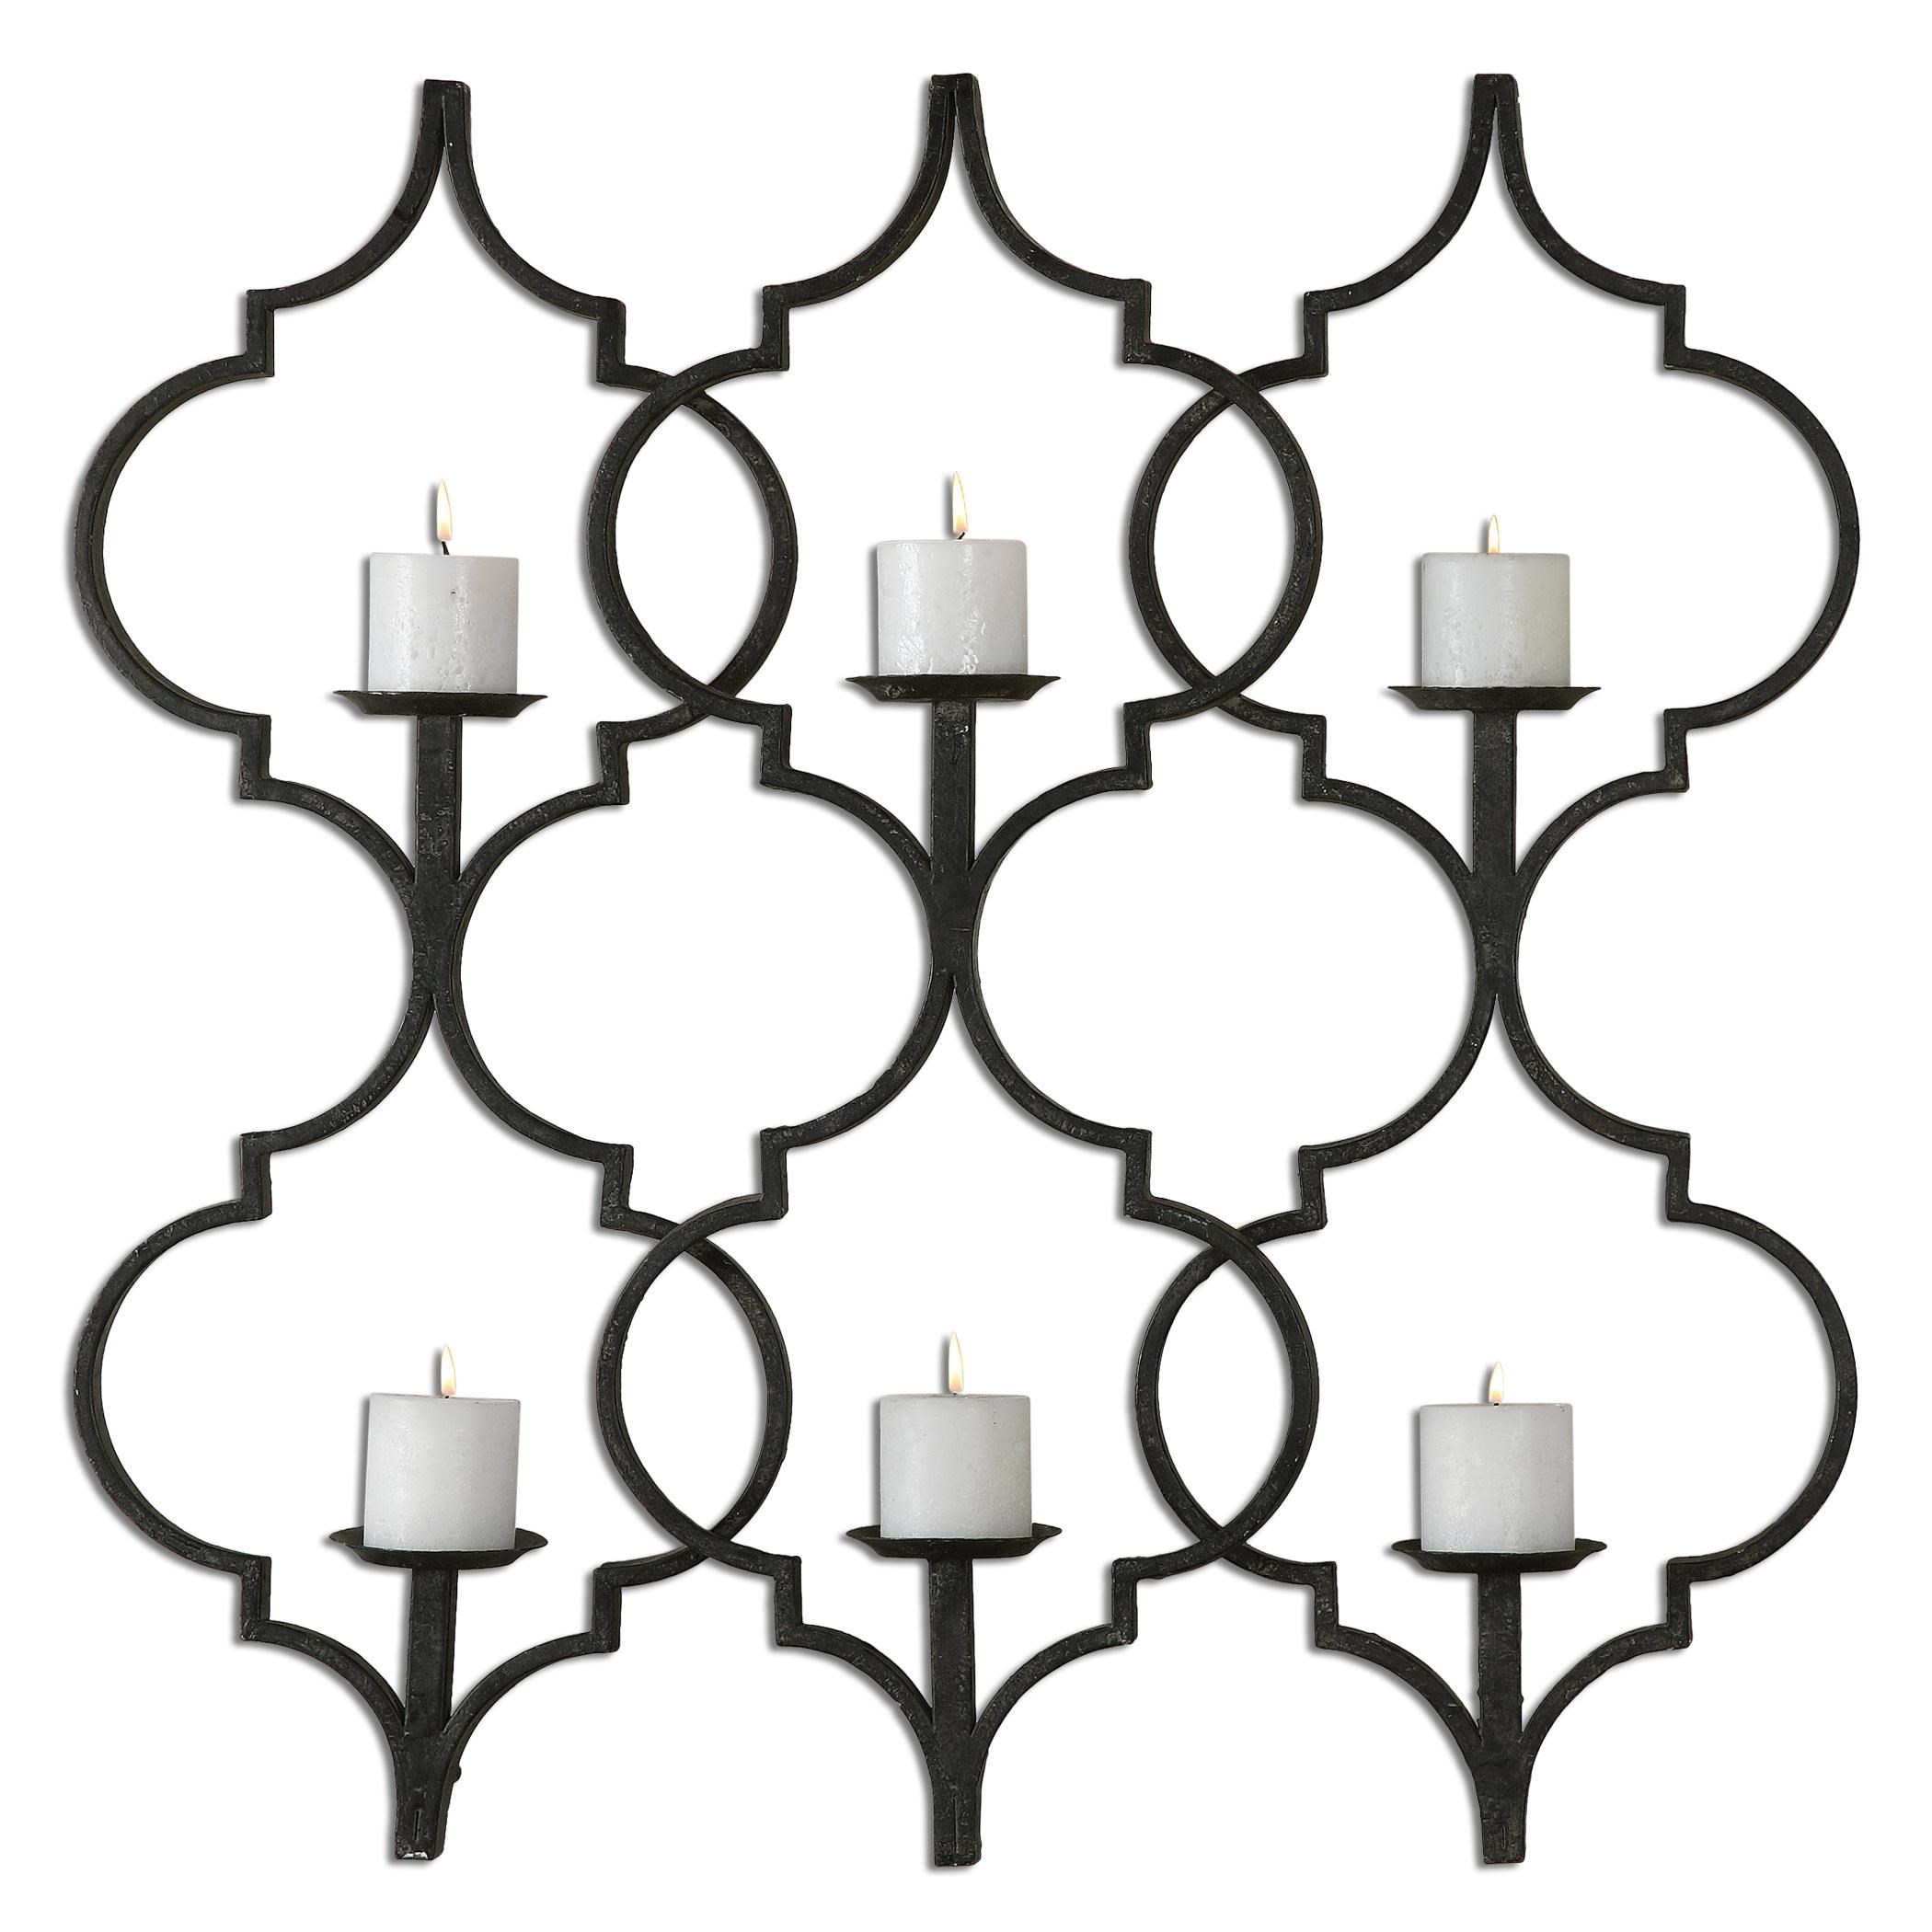 Uttermost Alternative Wall Decor Zakaria Metal Candle Wall Sconce   Del Sol  Furniture   Wall Décor Part 51